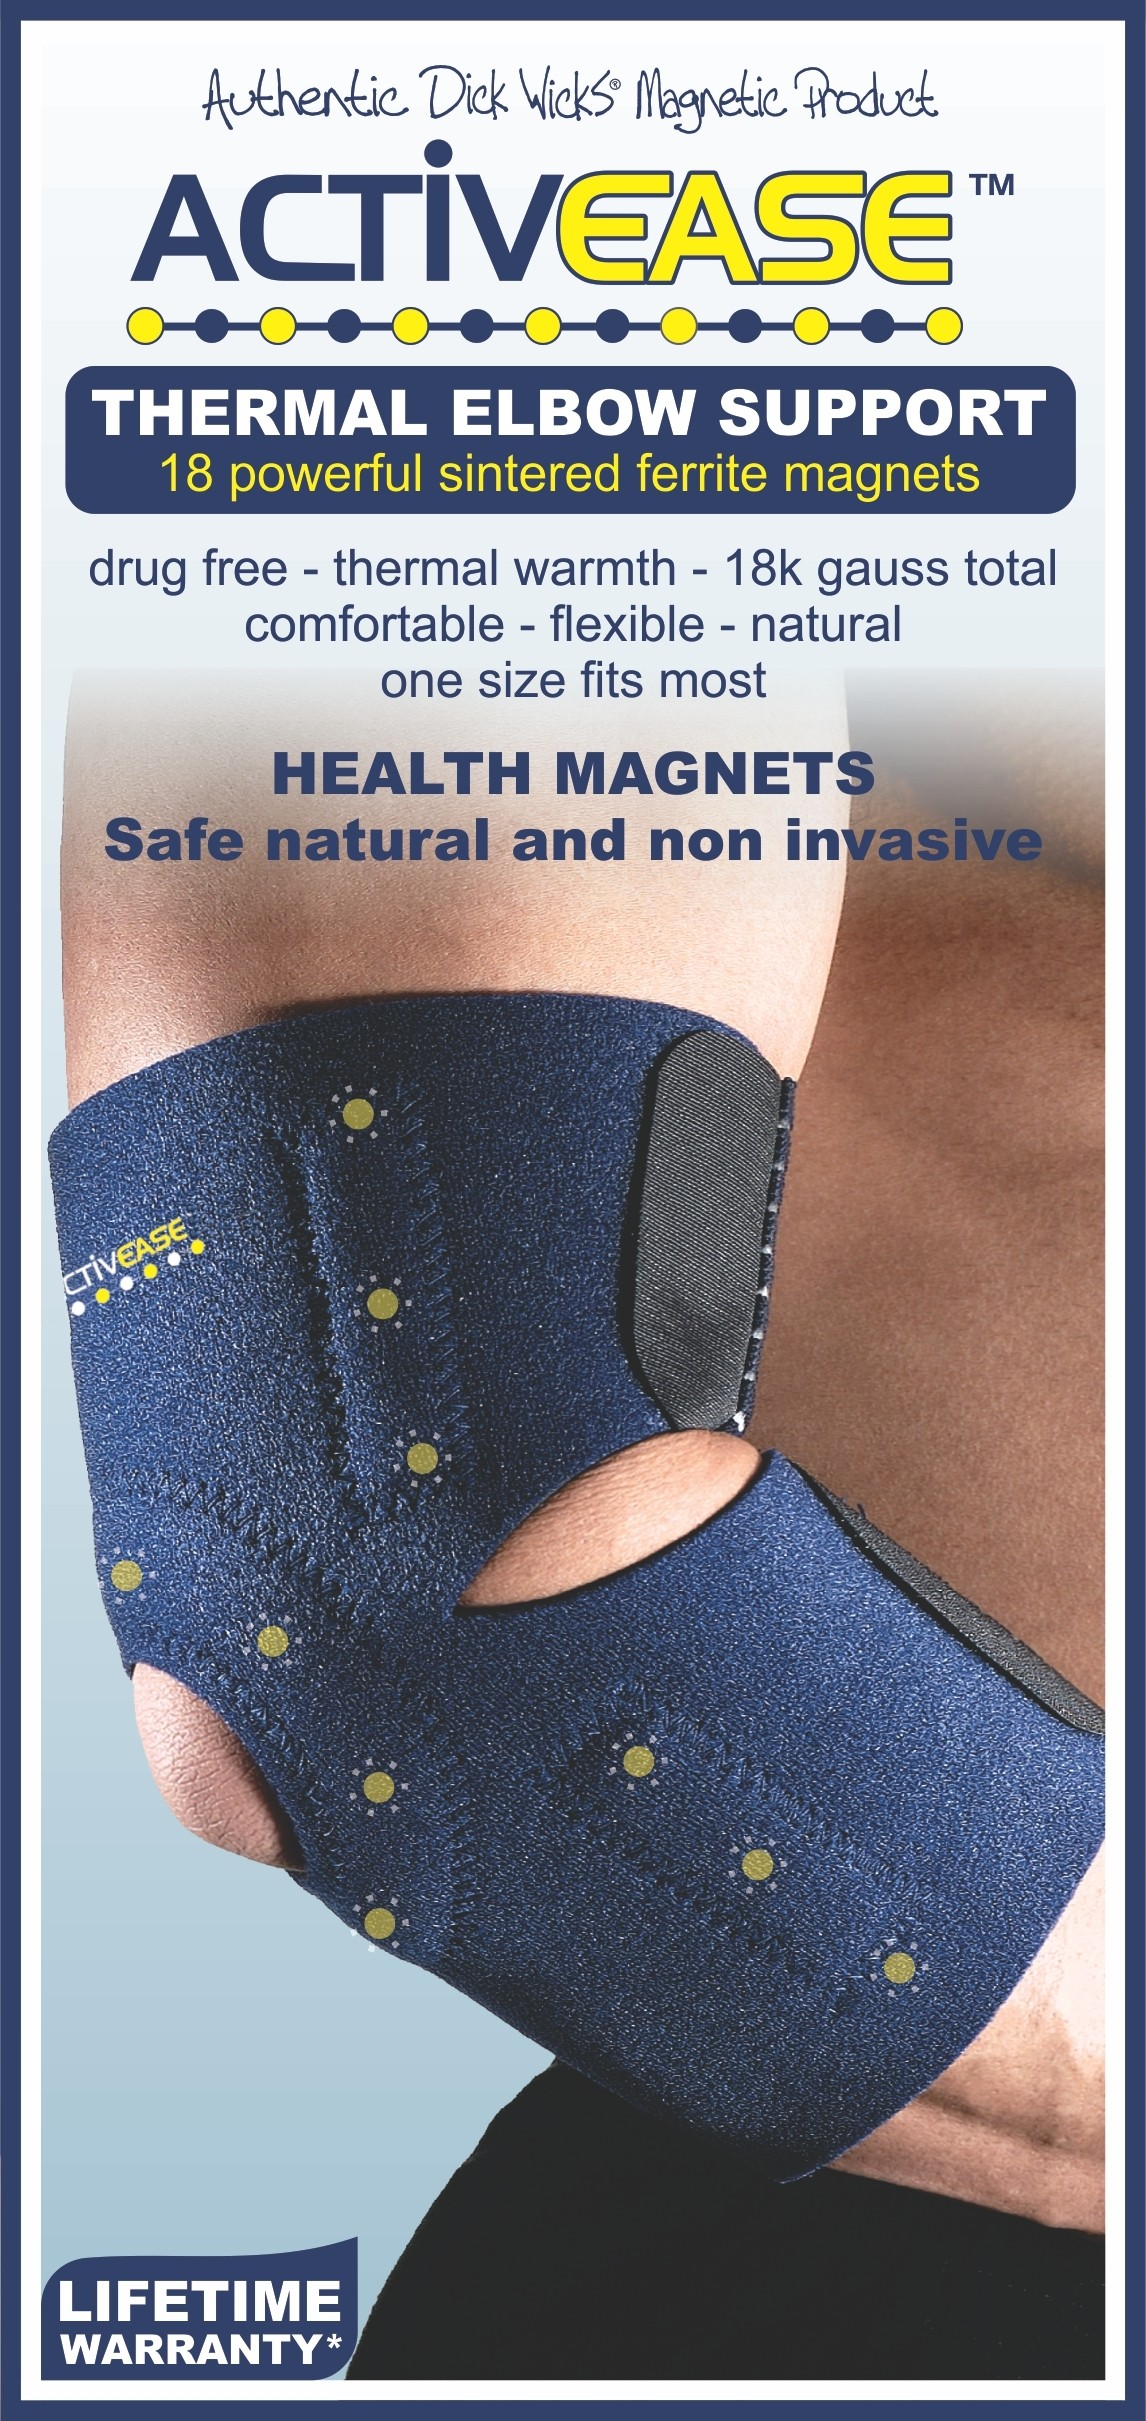 Activease Thermal Elbow Support with Magnets by Dick Wicks